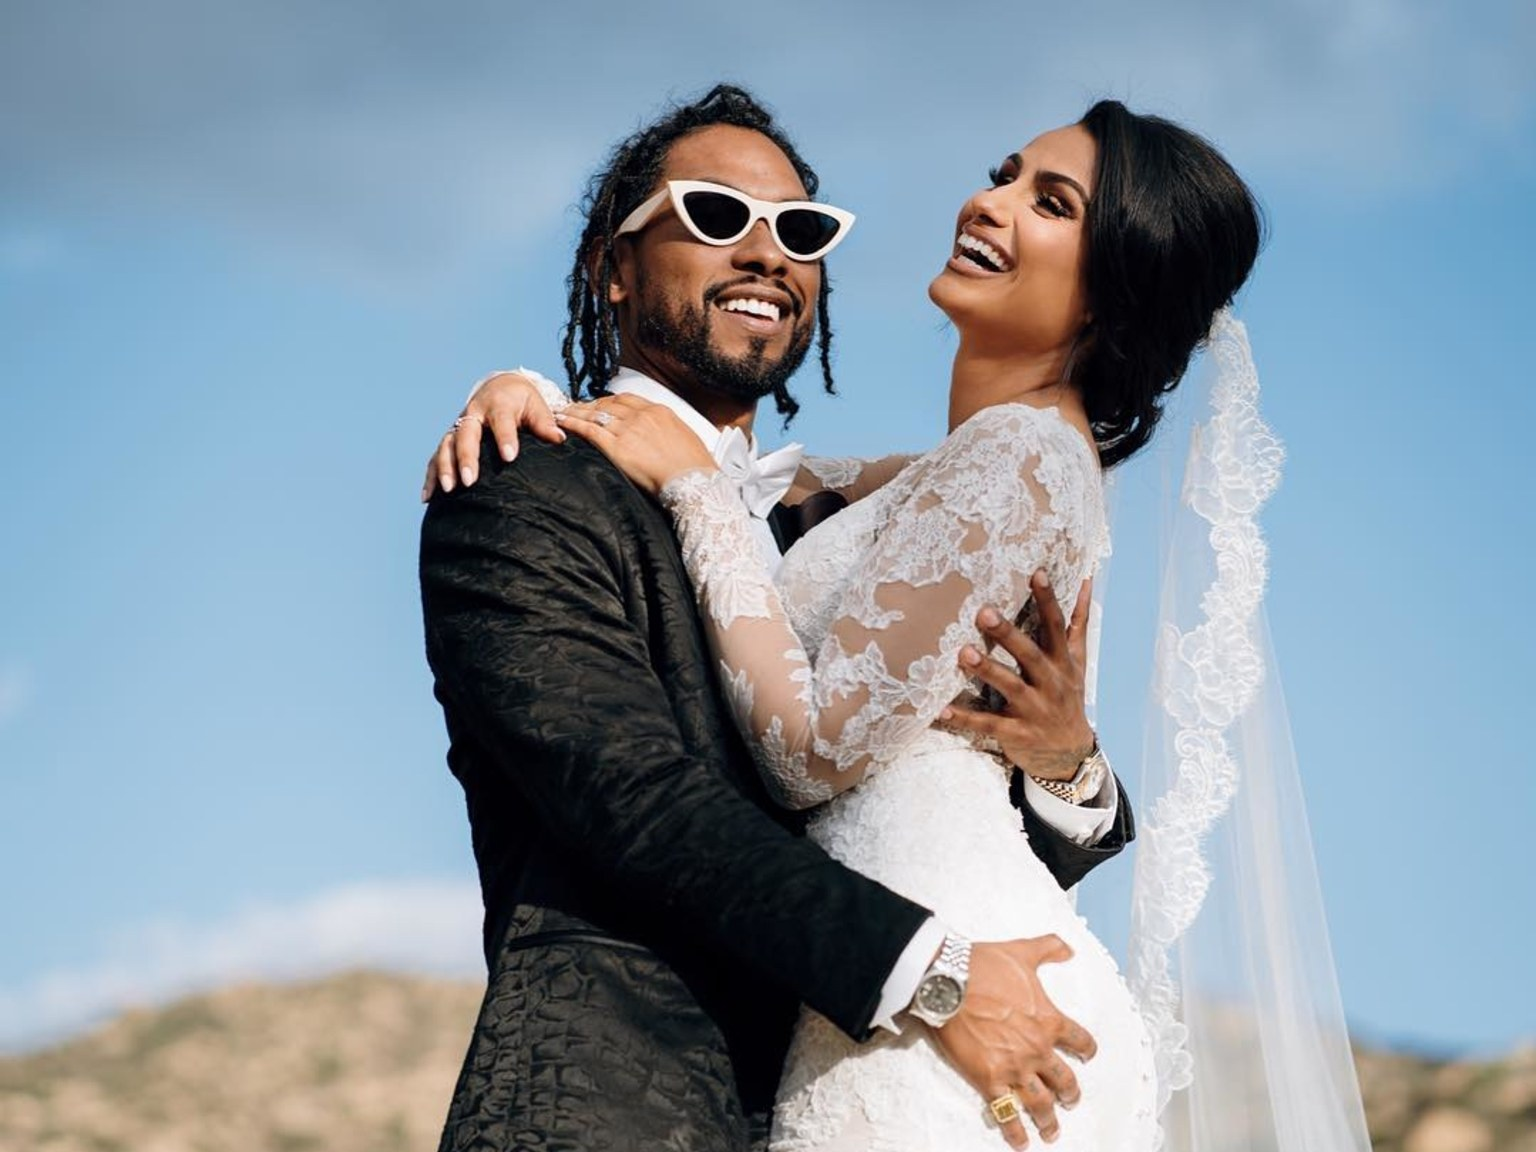 MIGUEL AND NAZANIN GOT MARRIED AFTER 13 YEARS OF DATING: MY THOUGHTS